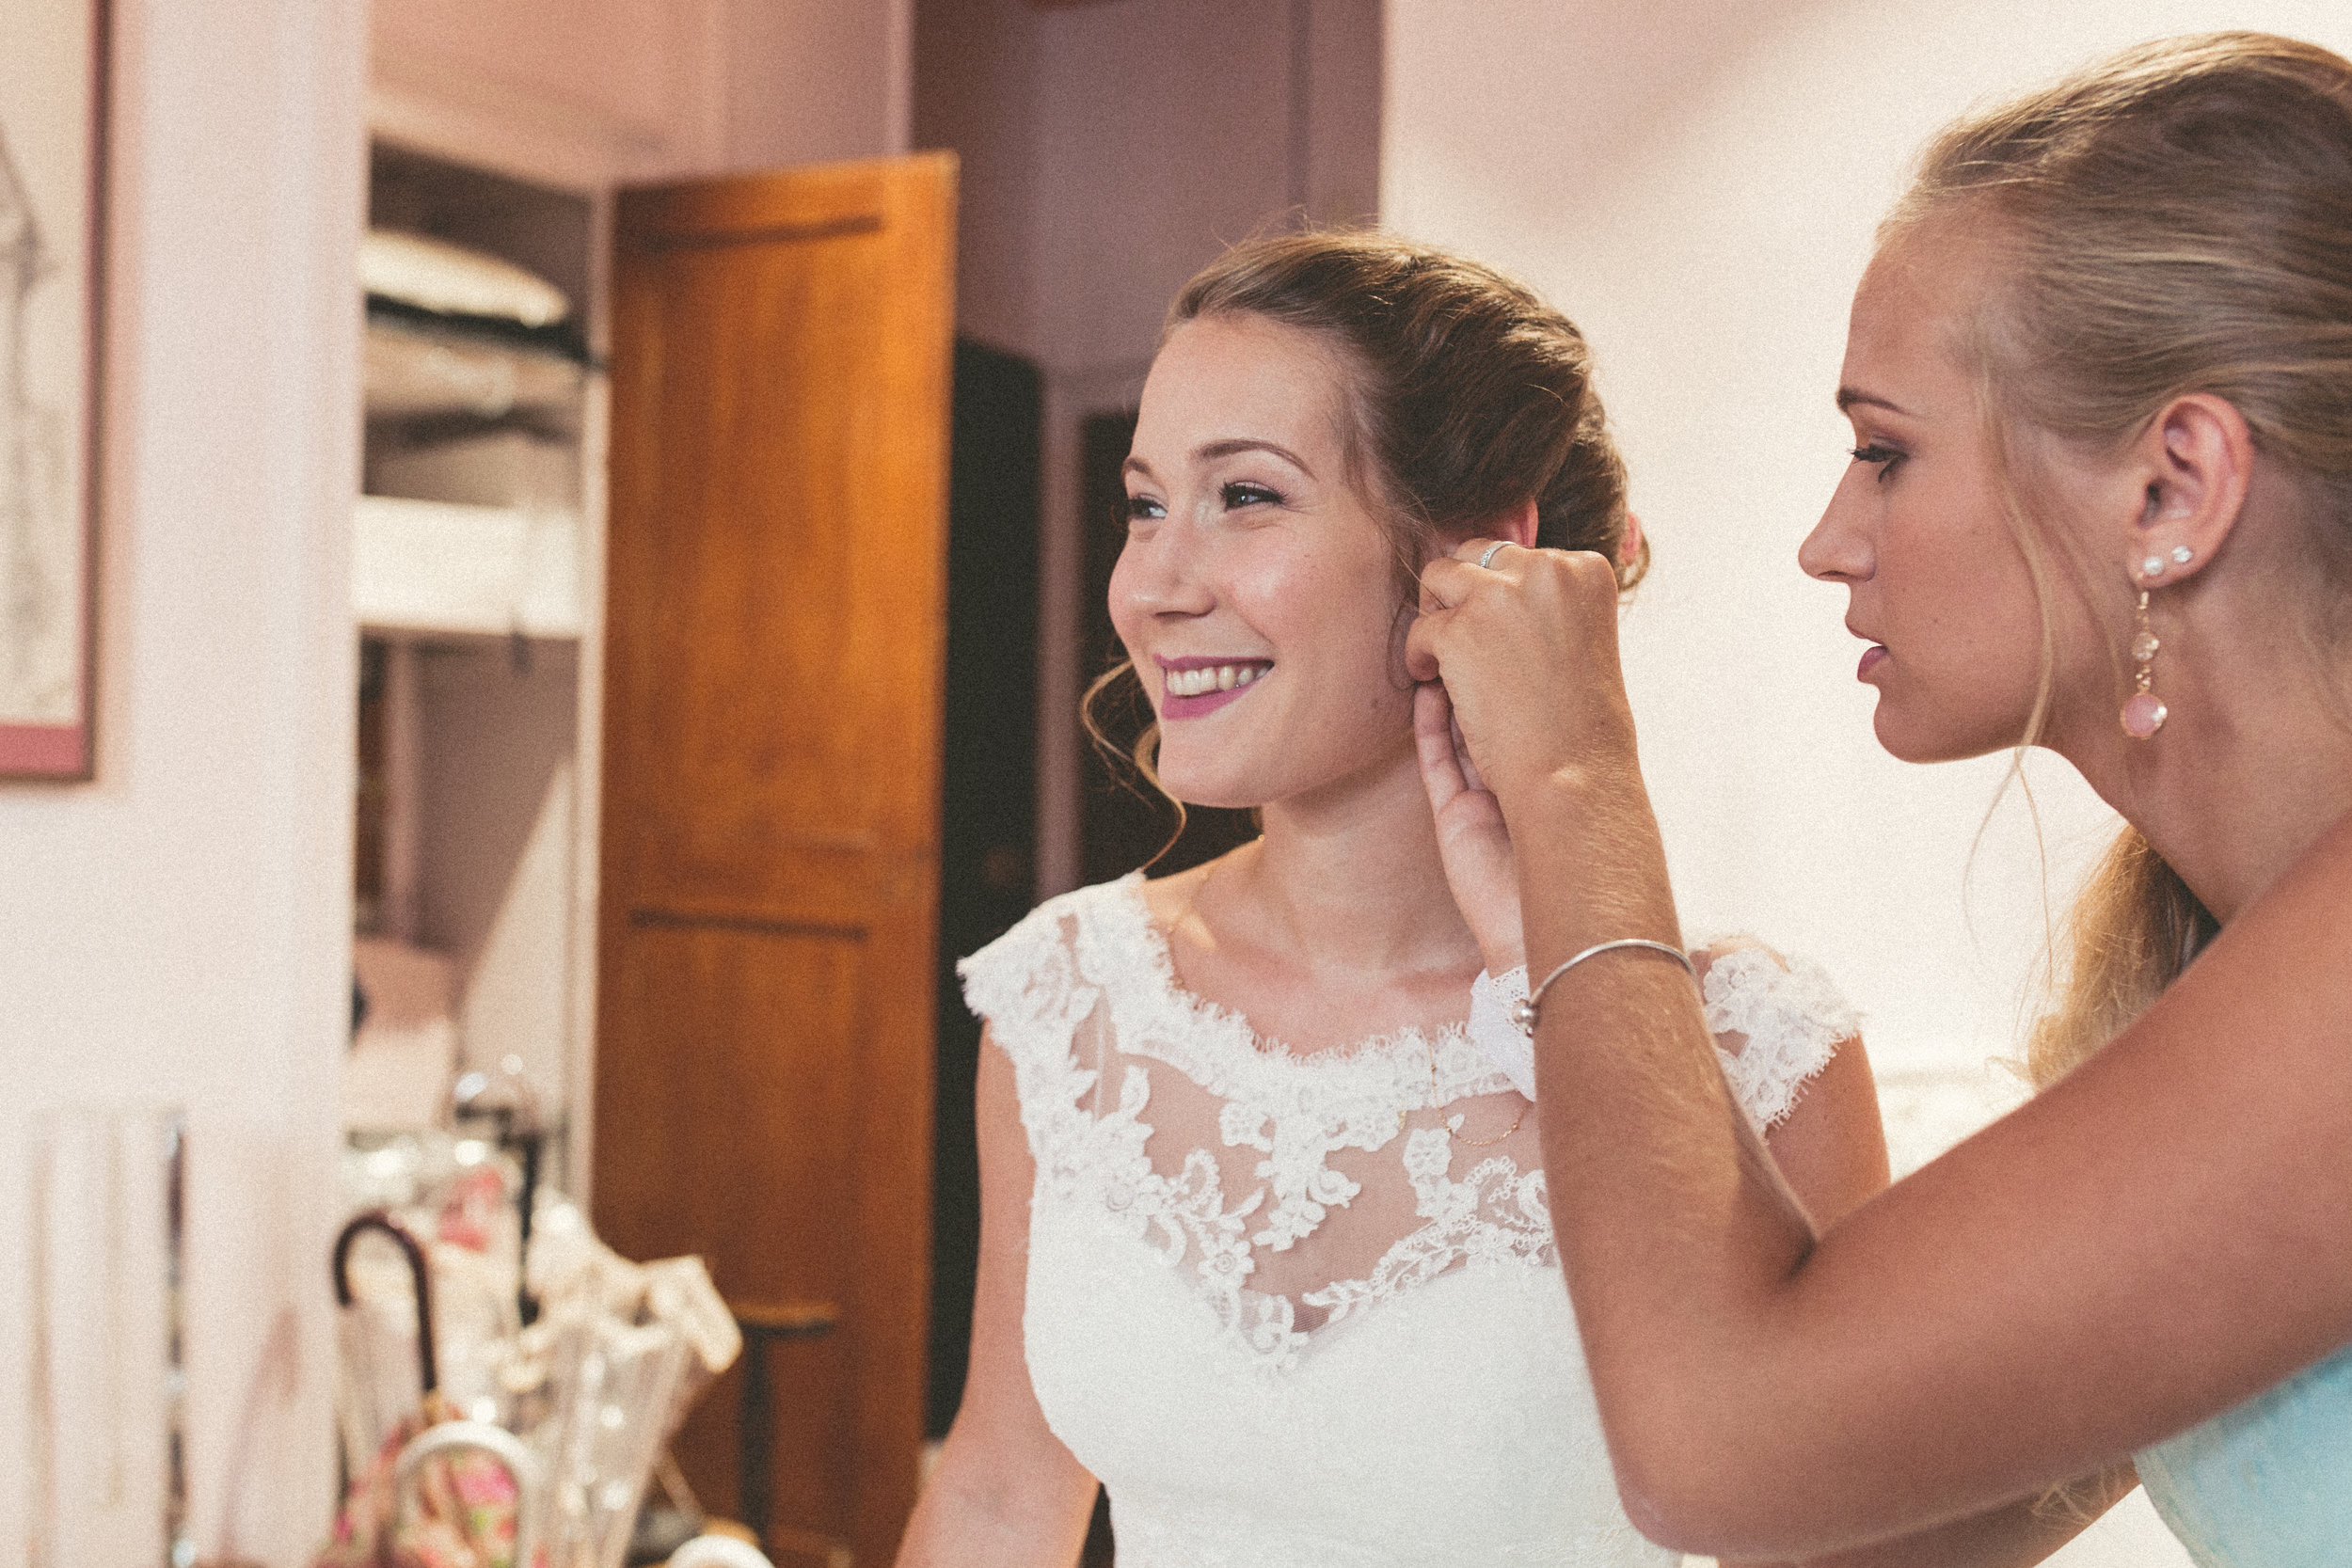 Maquilleuse+mariage+Grenoble-54.jpg